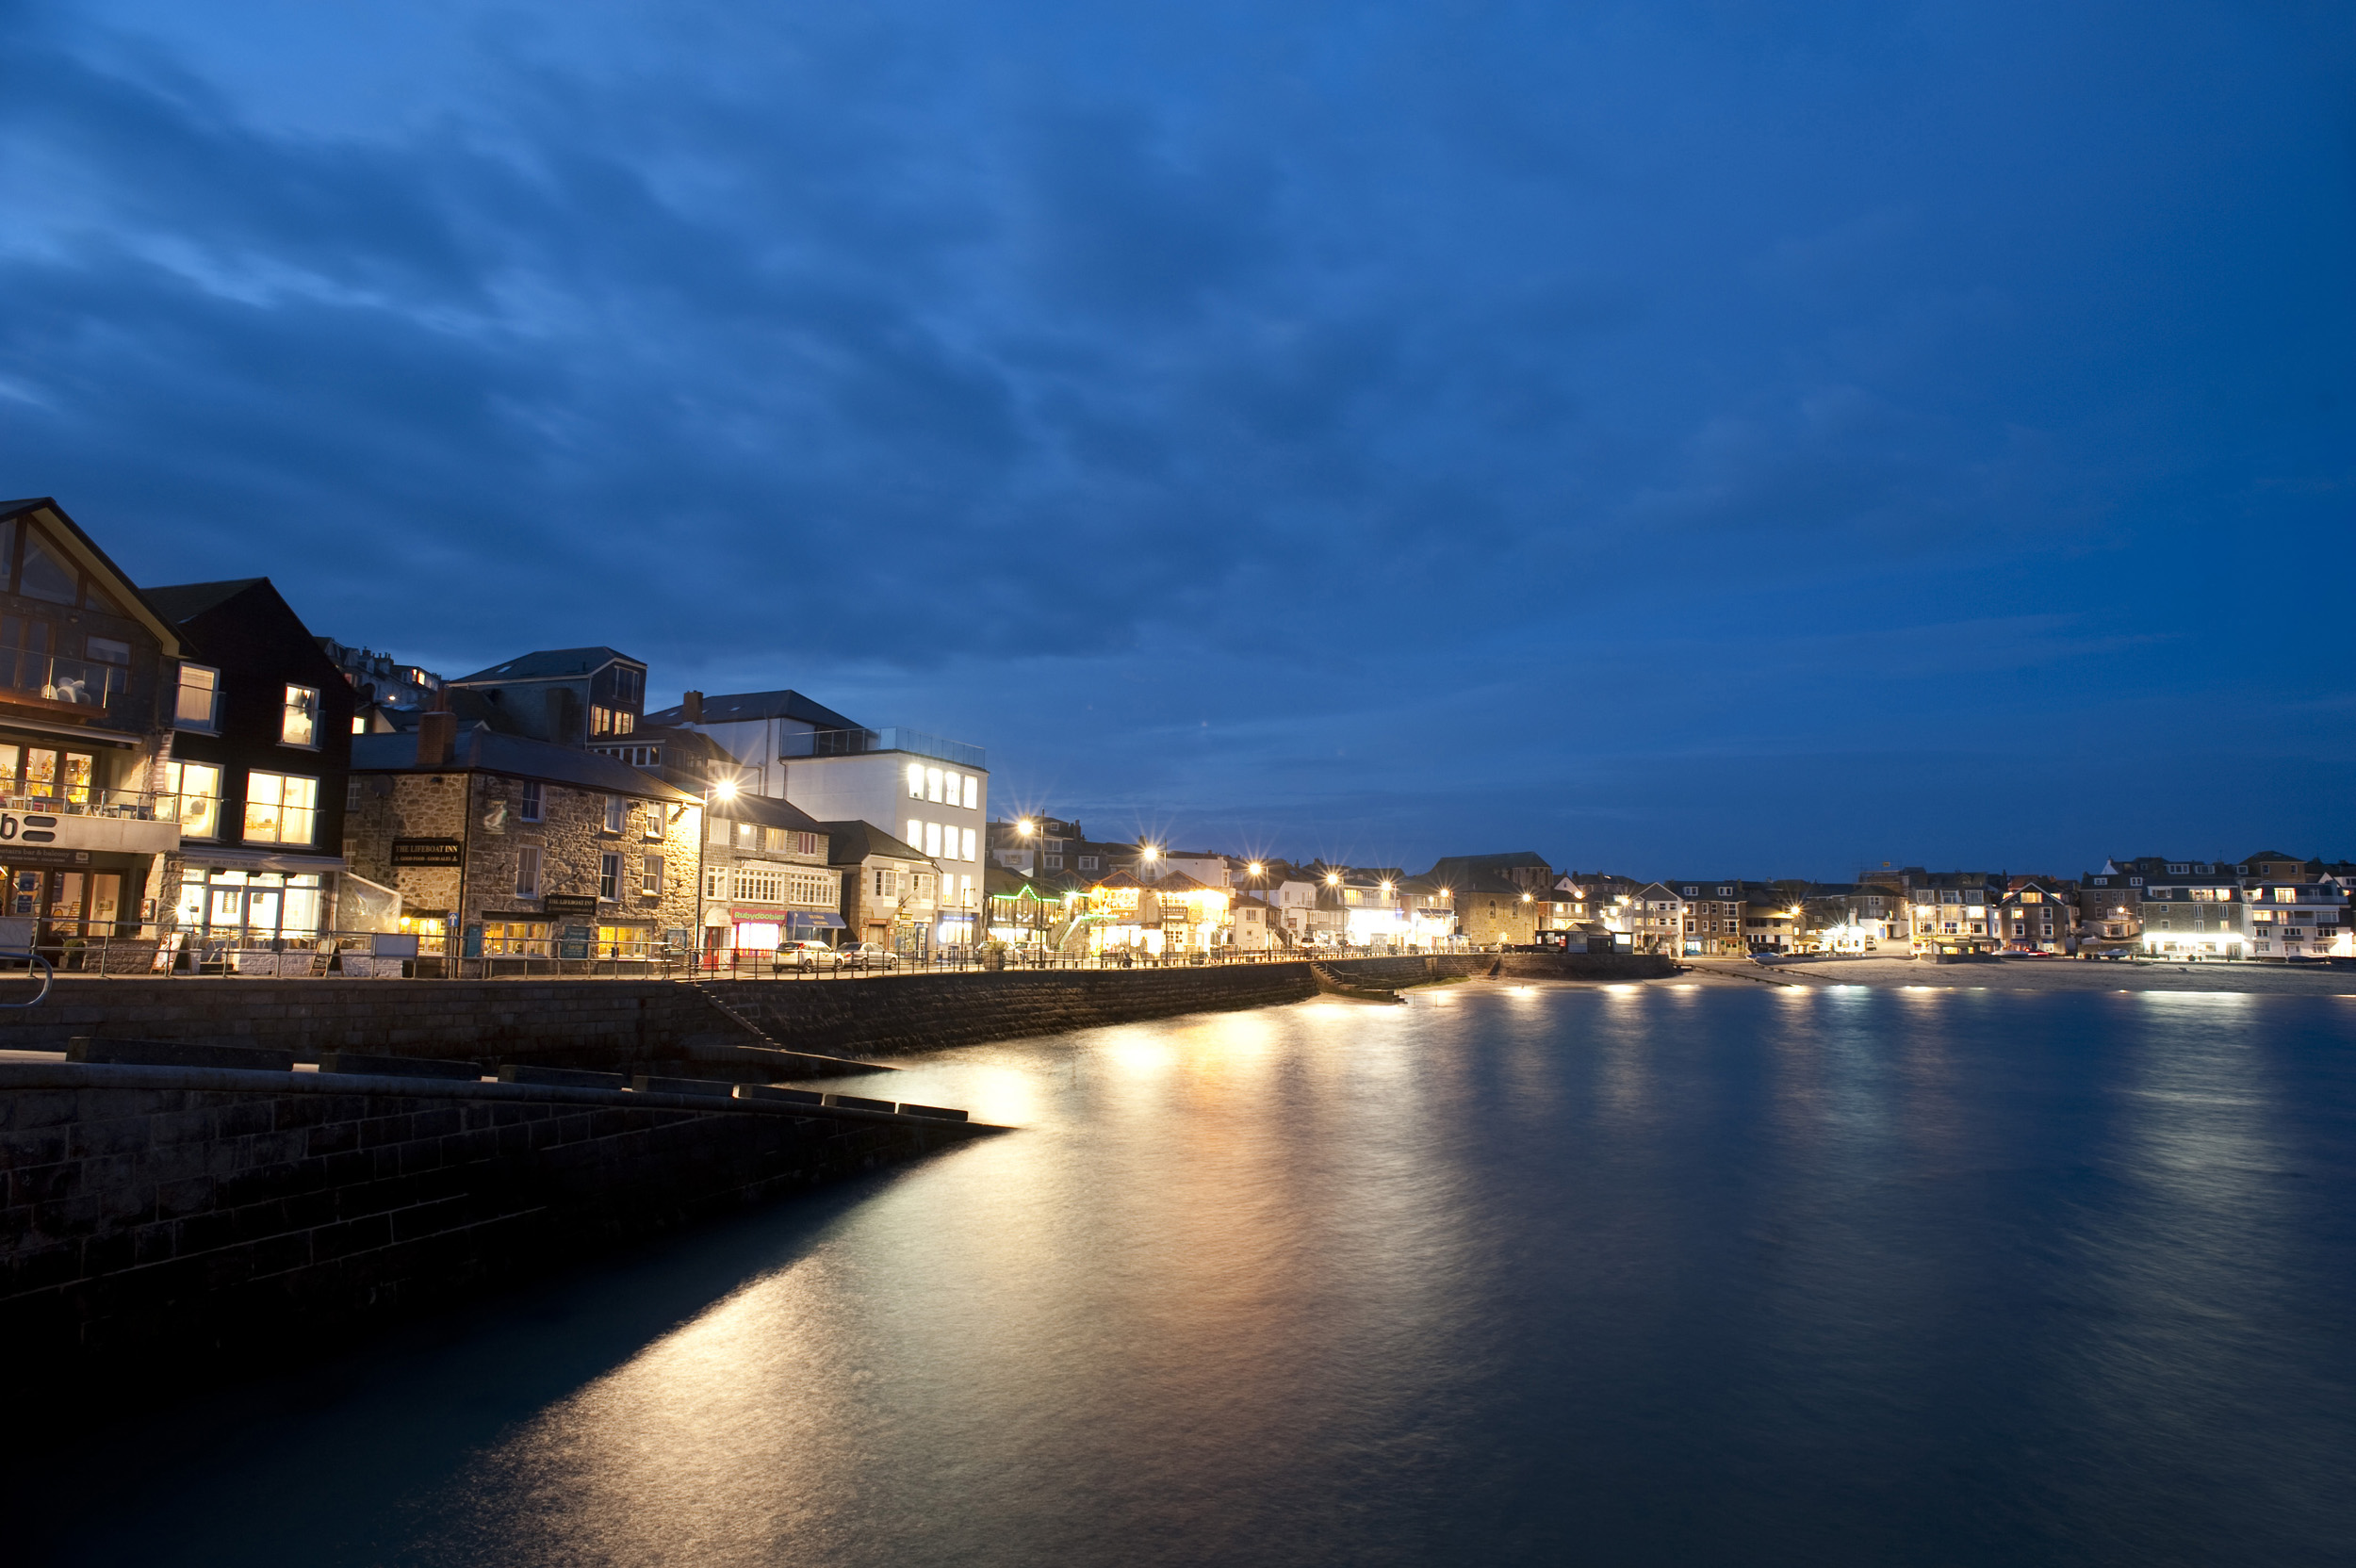 a night time view of the quayside of saint ives harbour, cornwall